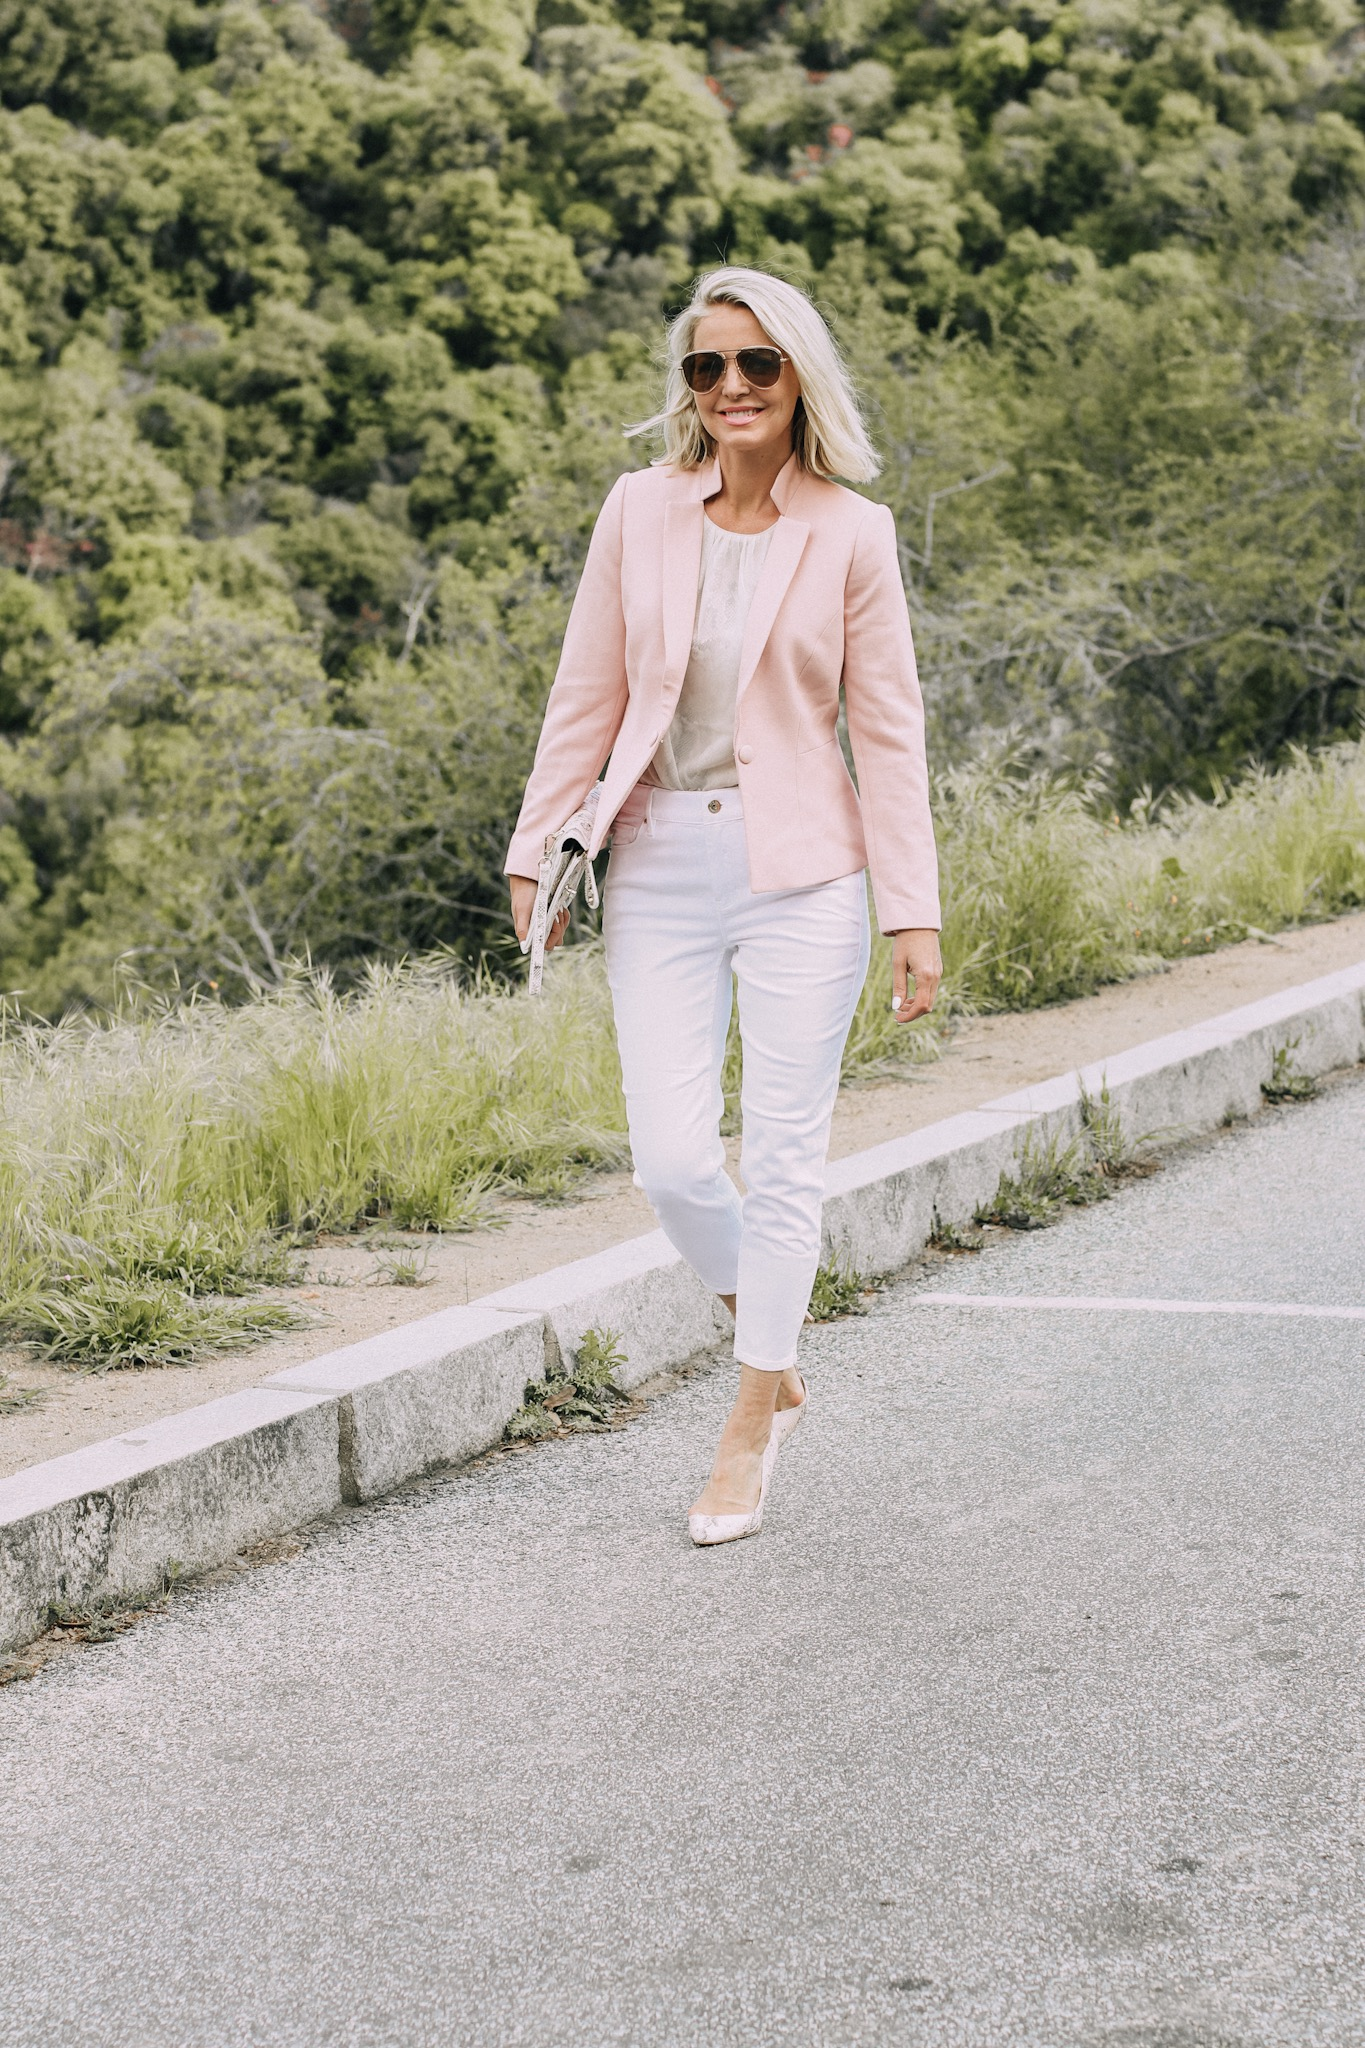 Spring Office Outfits, Fashion blogger Erin Busbee of BusbeeStyle.com wearing a blazer with a snake print shell and white cropped jeans, with pink snake print heels and clutch from White House Black Market in Sequoia National Park